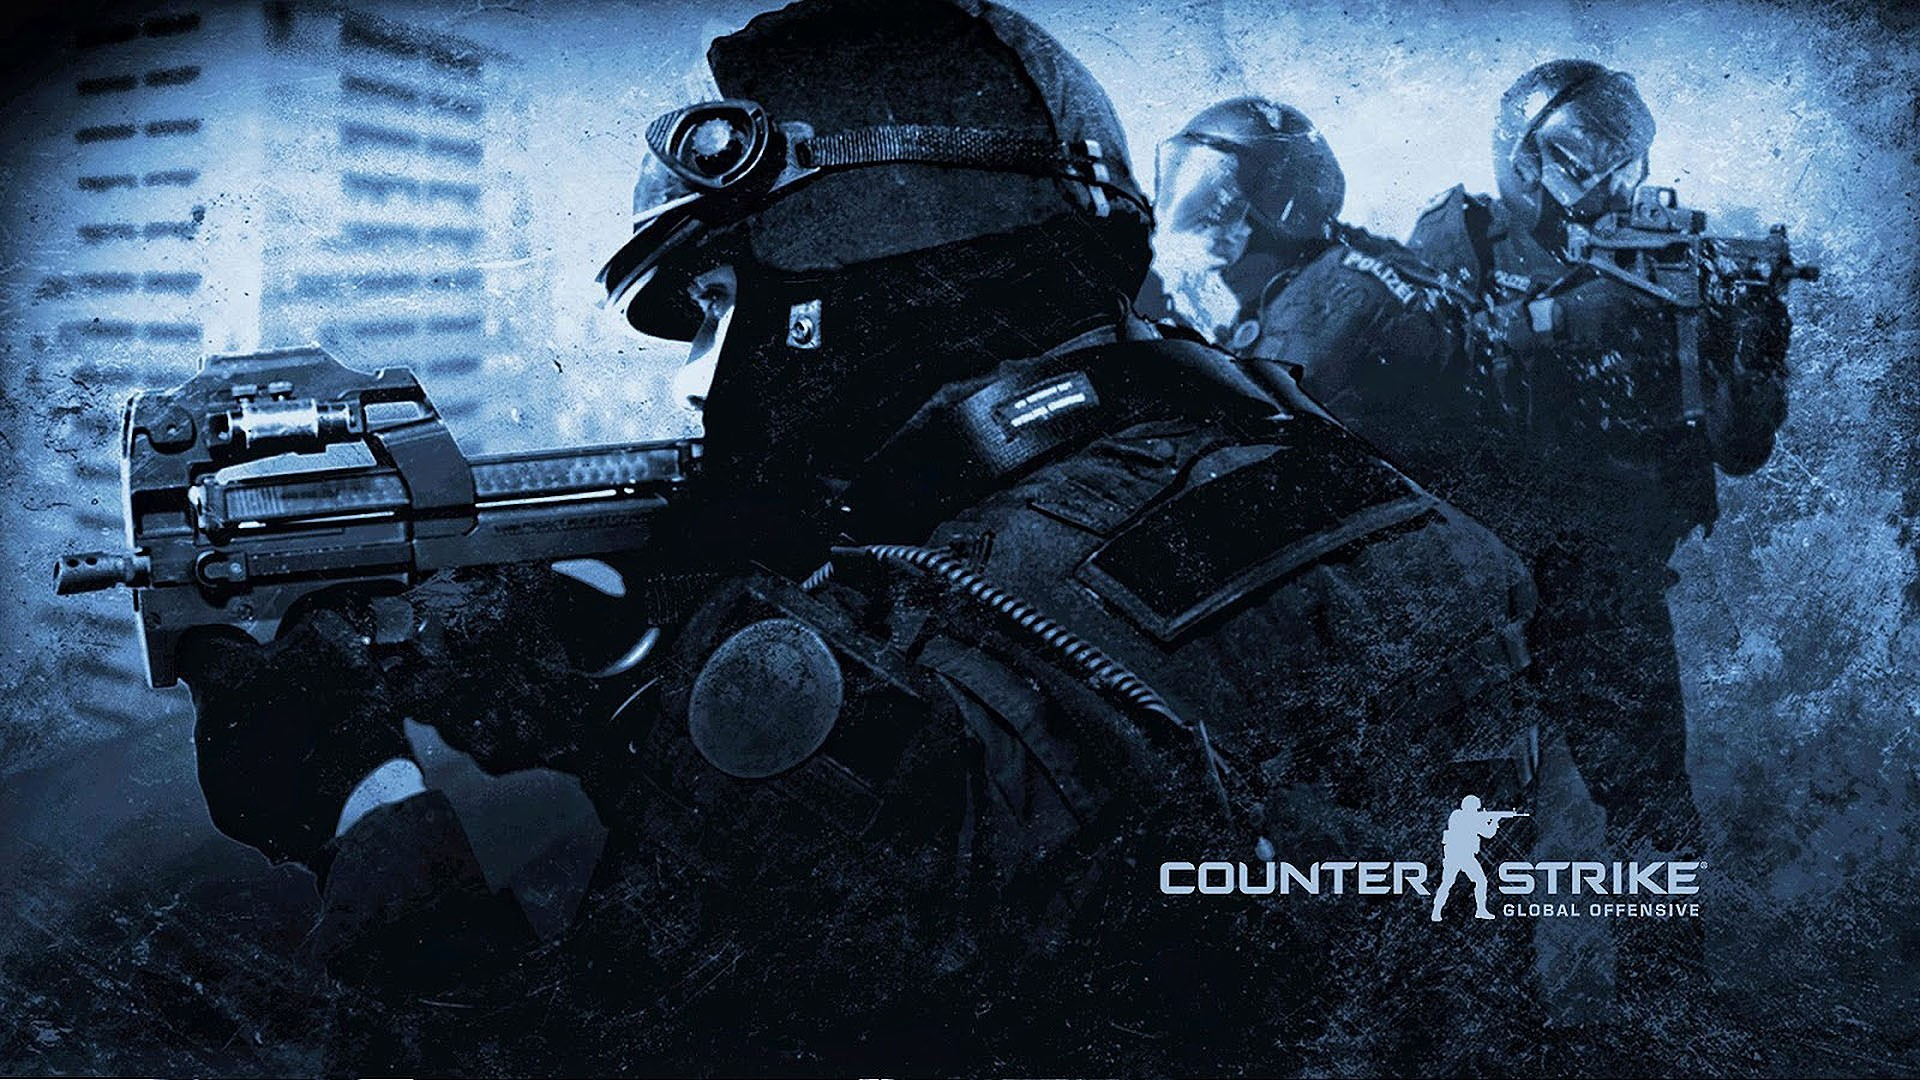 counter-strike-global-offensive-game-hd-wallpaper-1920x1080-